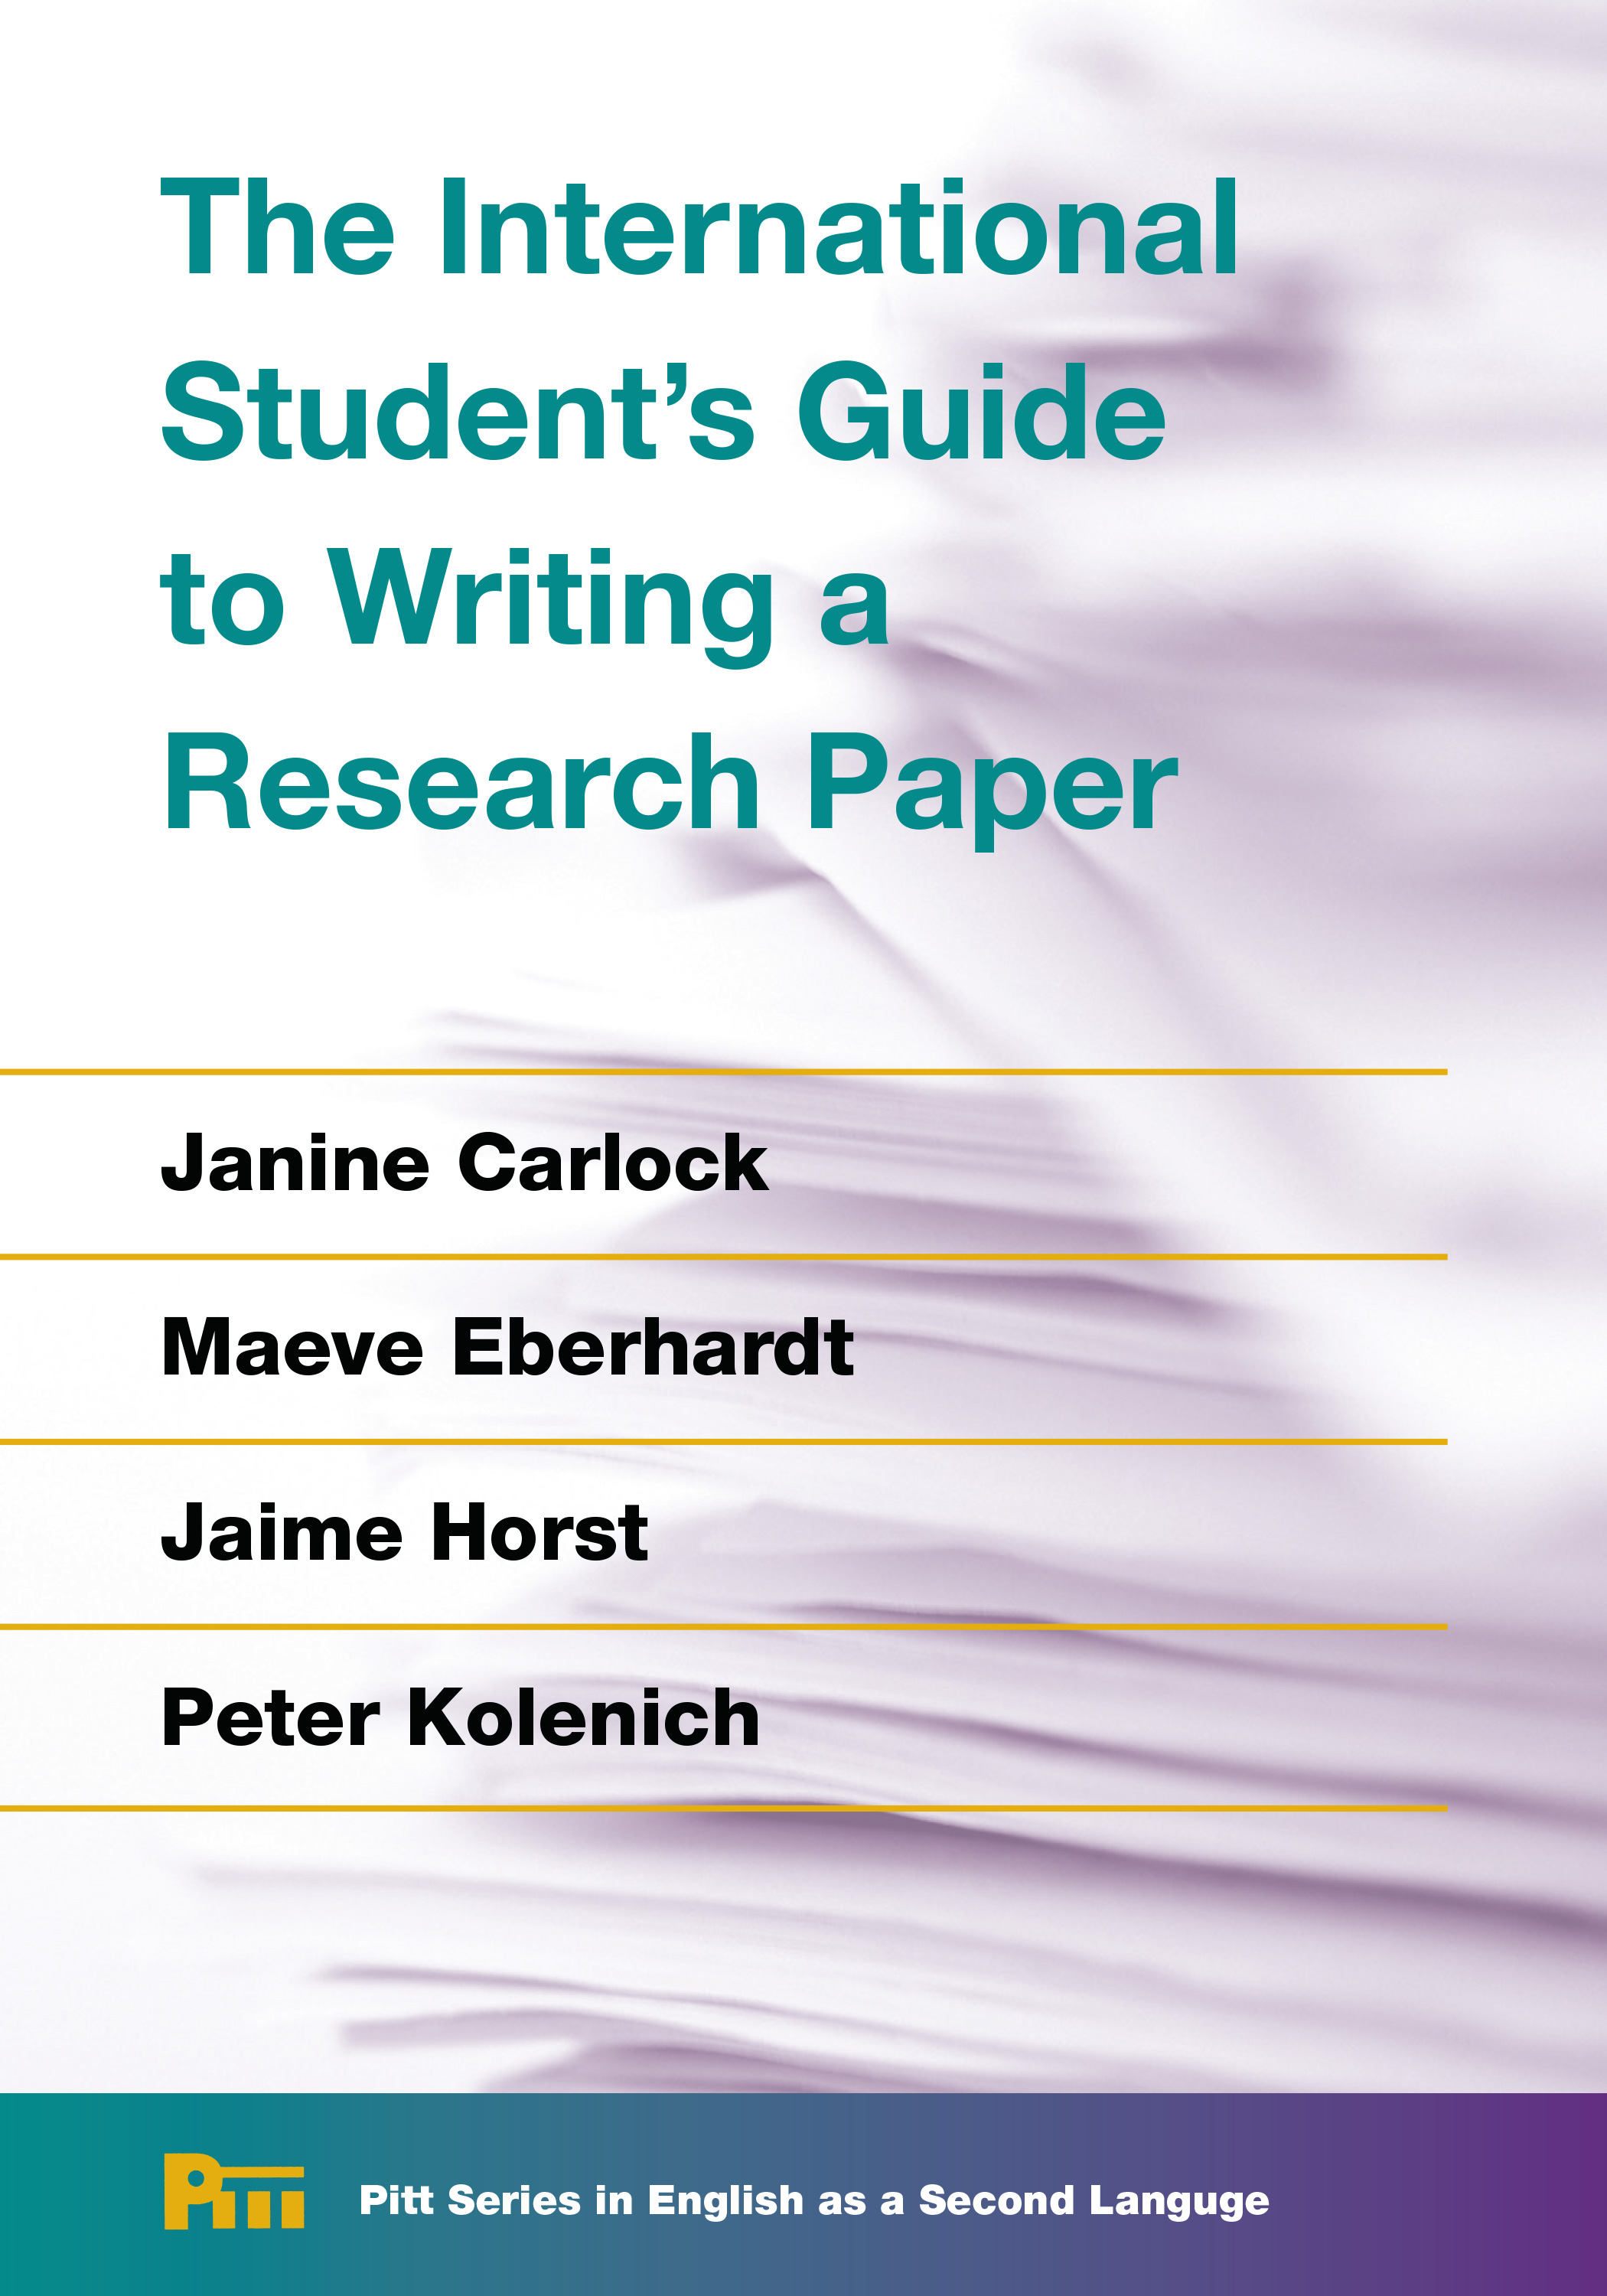 012 Research Paper Writing Unique Papers A Complete Guide Pdf Download James D Lester